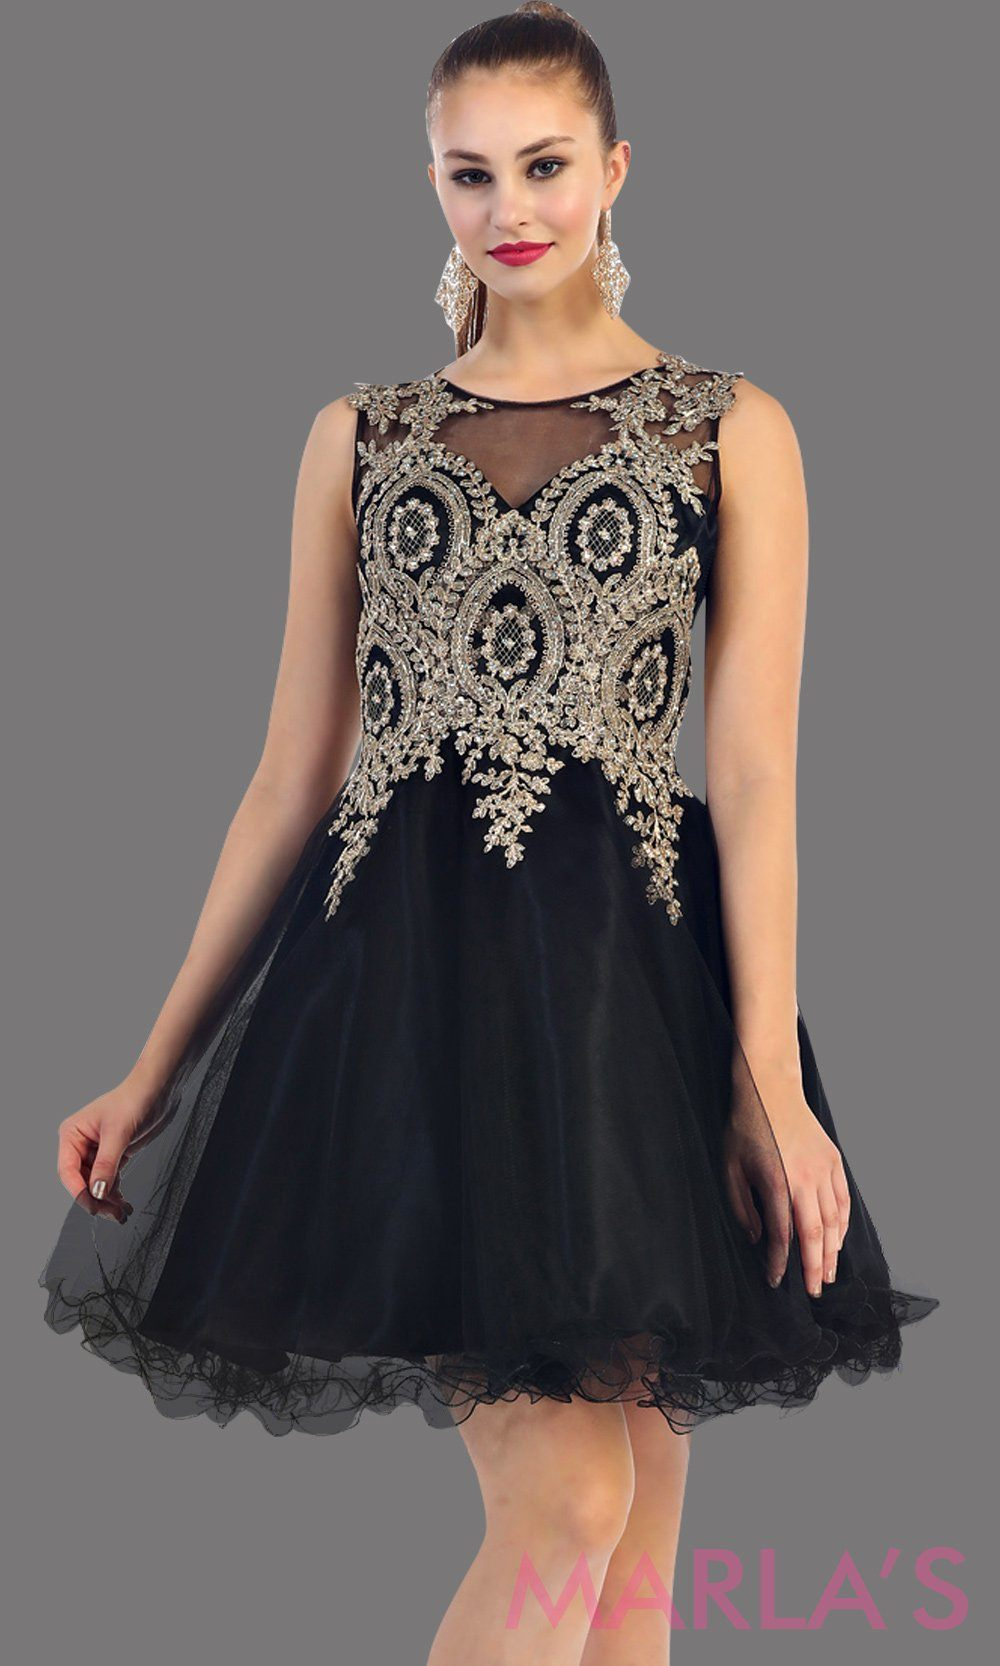 *Black Short Puffy Dress with Gold Lace Applique